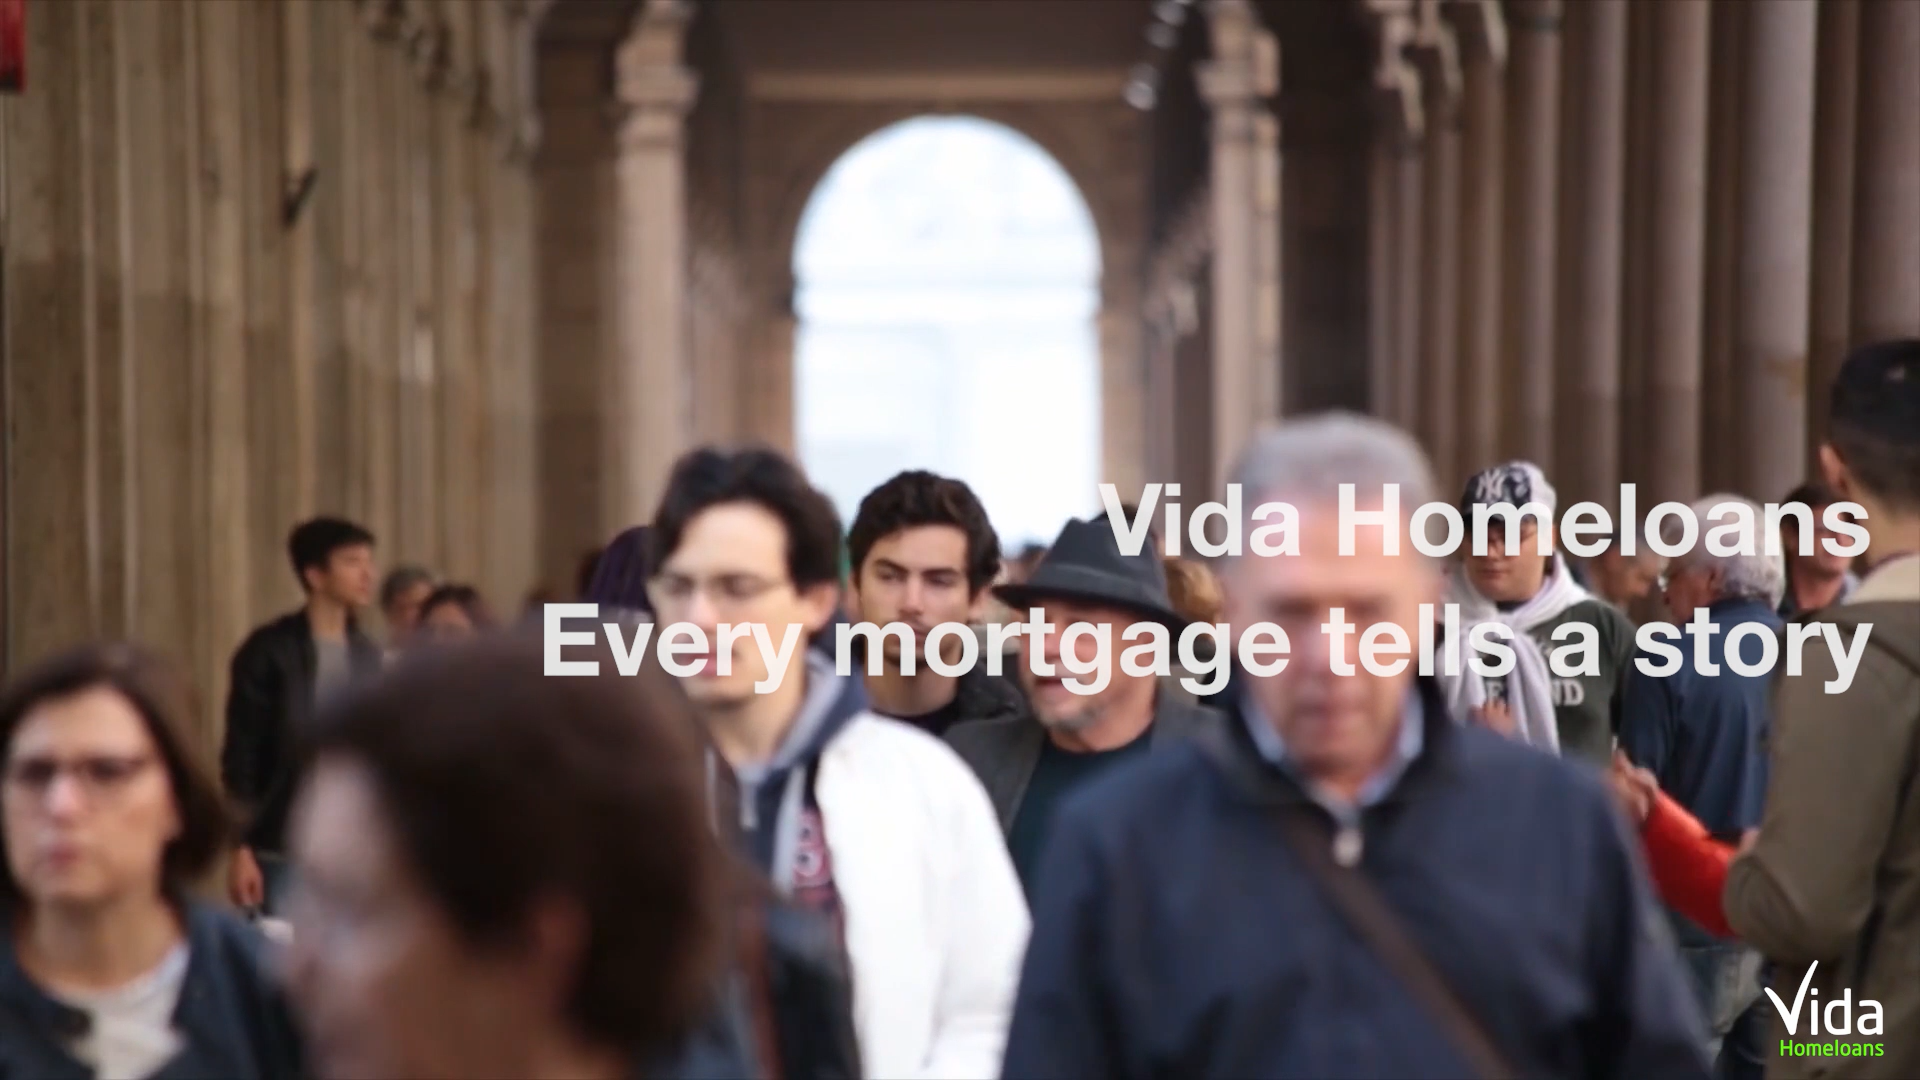 Vida Homeloans - Every Mortgage Tells a Story